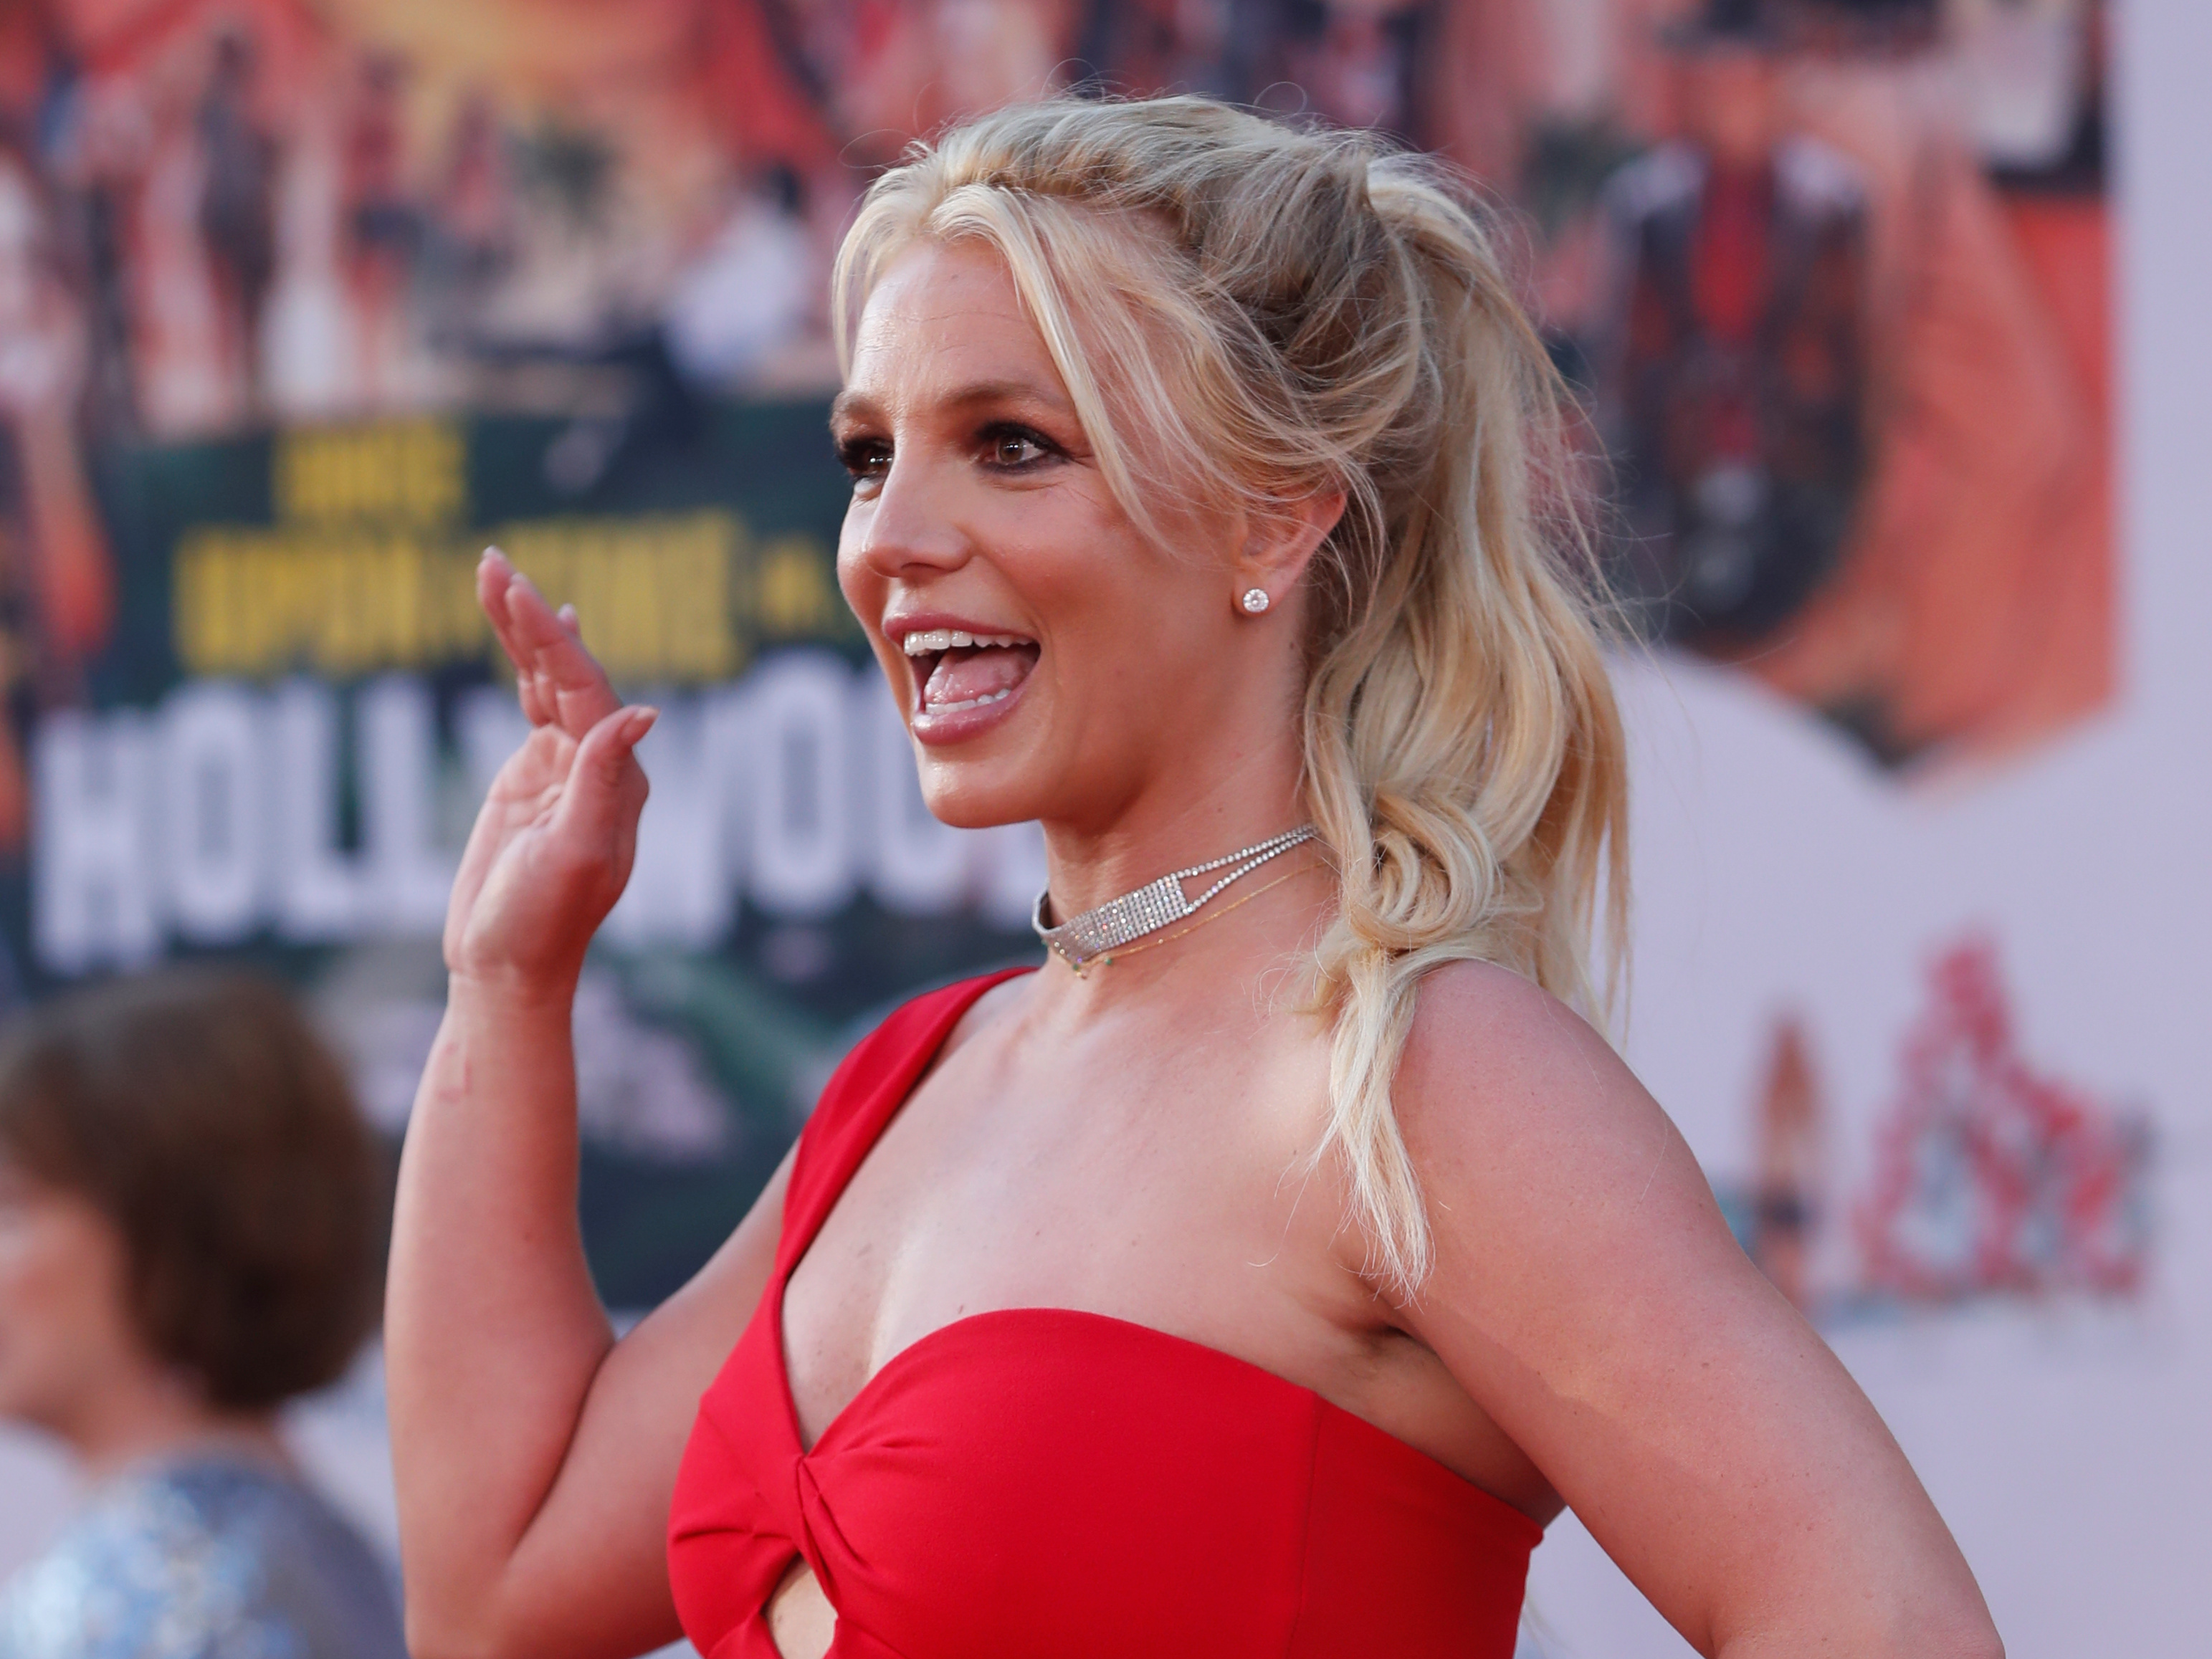 Britney Spears hasn't legally controlled her $59 million fortune in 12 years. That is how the pop icon makes and spends her money, from Purpose hunting trips to California mansions.